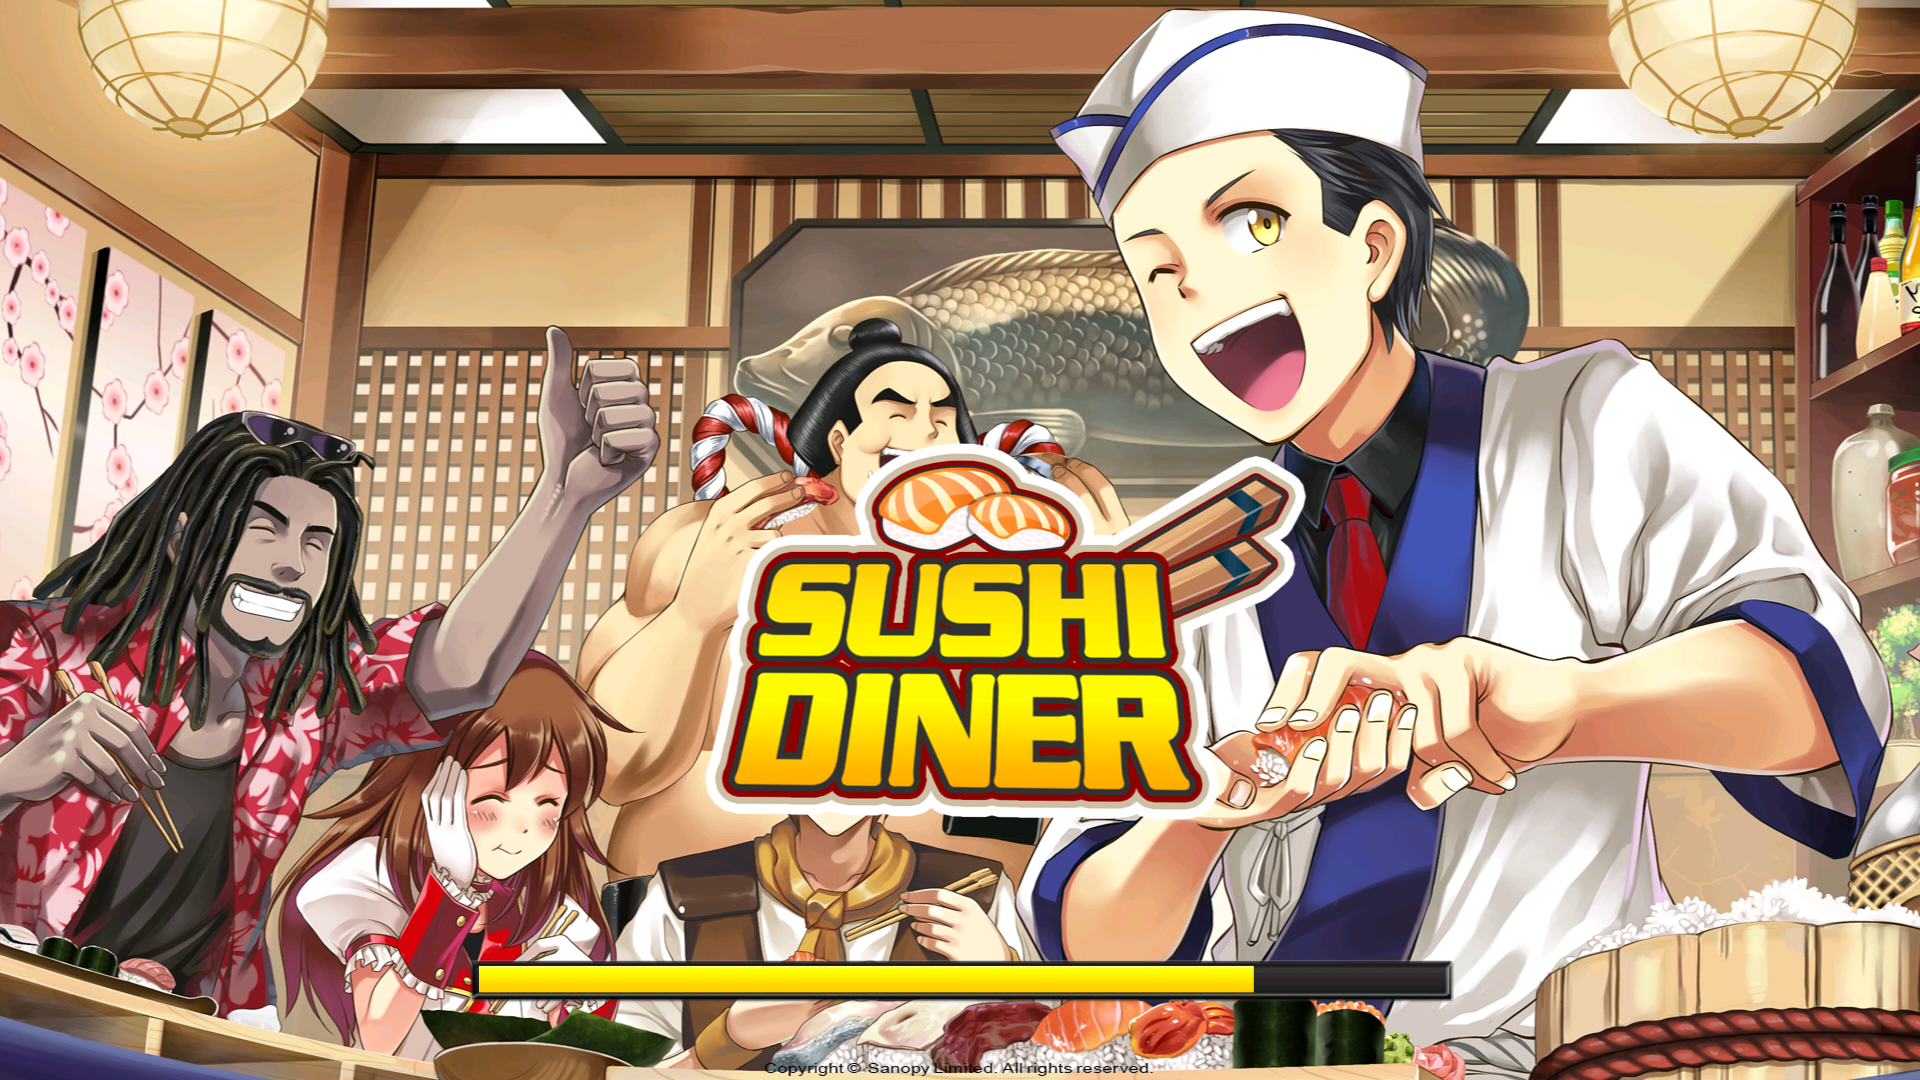 androidアプリ Sushi Diner - Fun Cooking Game攻略スクリーンショット1